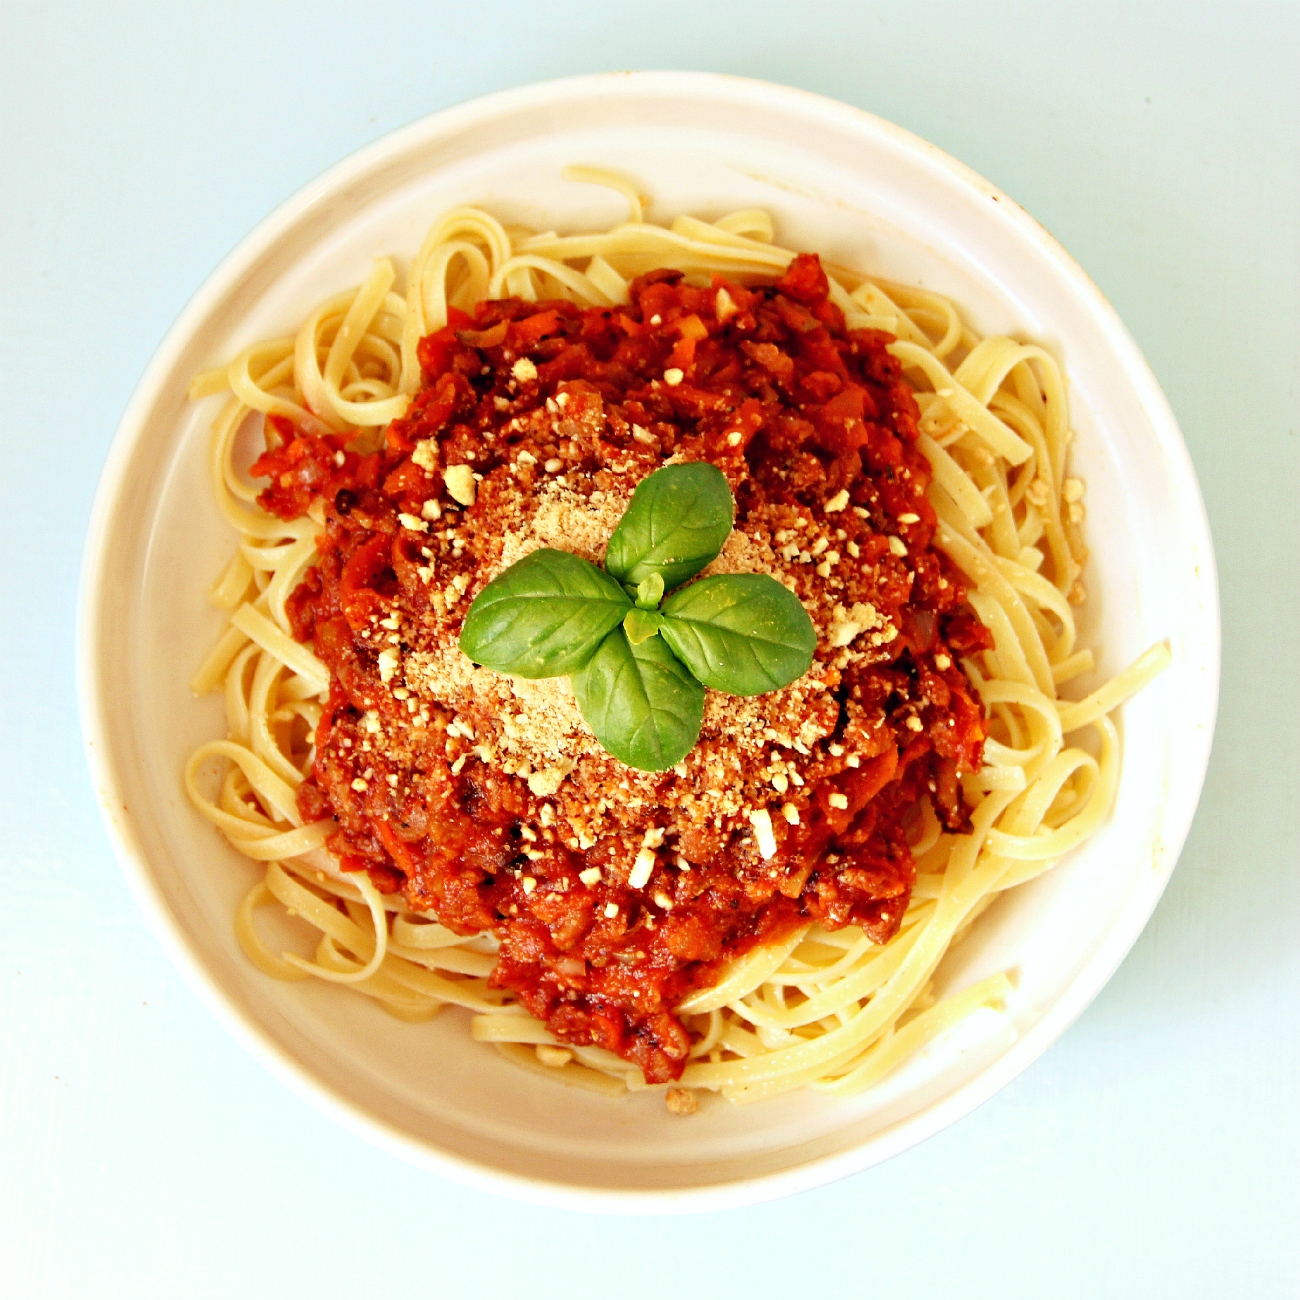 Vegan Slow Cooked Spaghetti Bolognese - The Vegan Eskimo